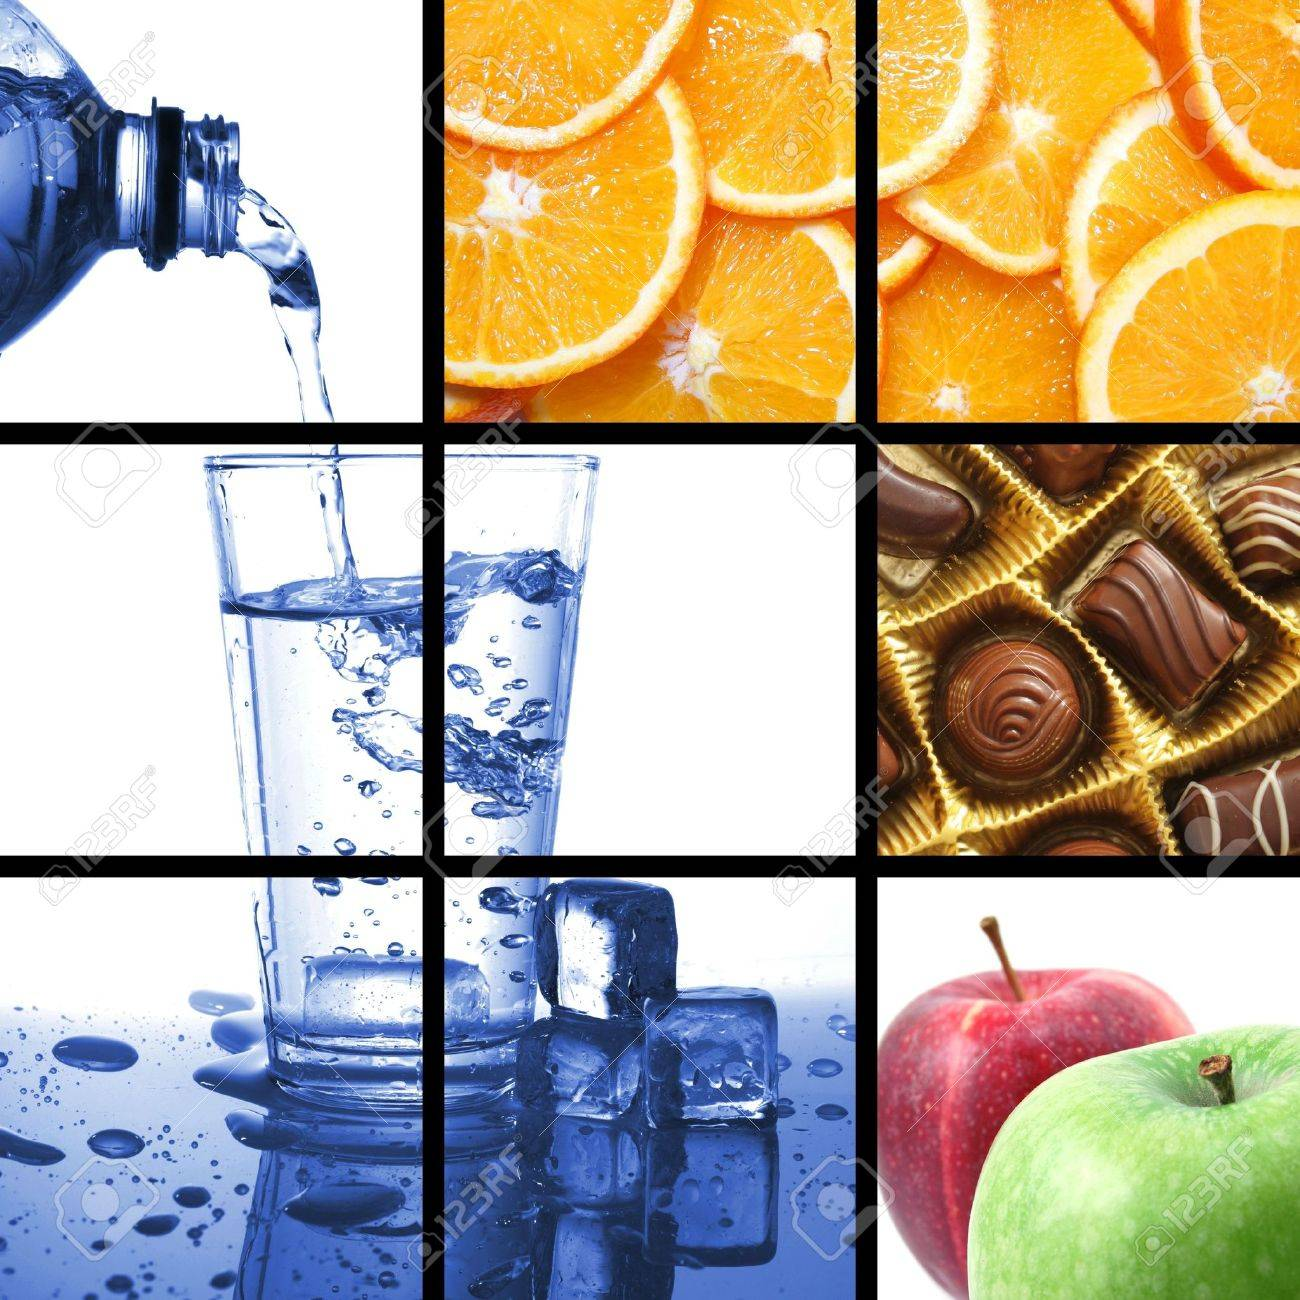 food and drink collage or collection showing healthy lifestyle Stock Photo - 5970888